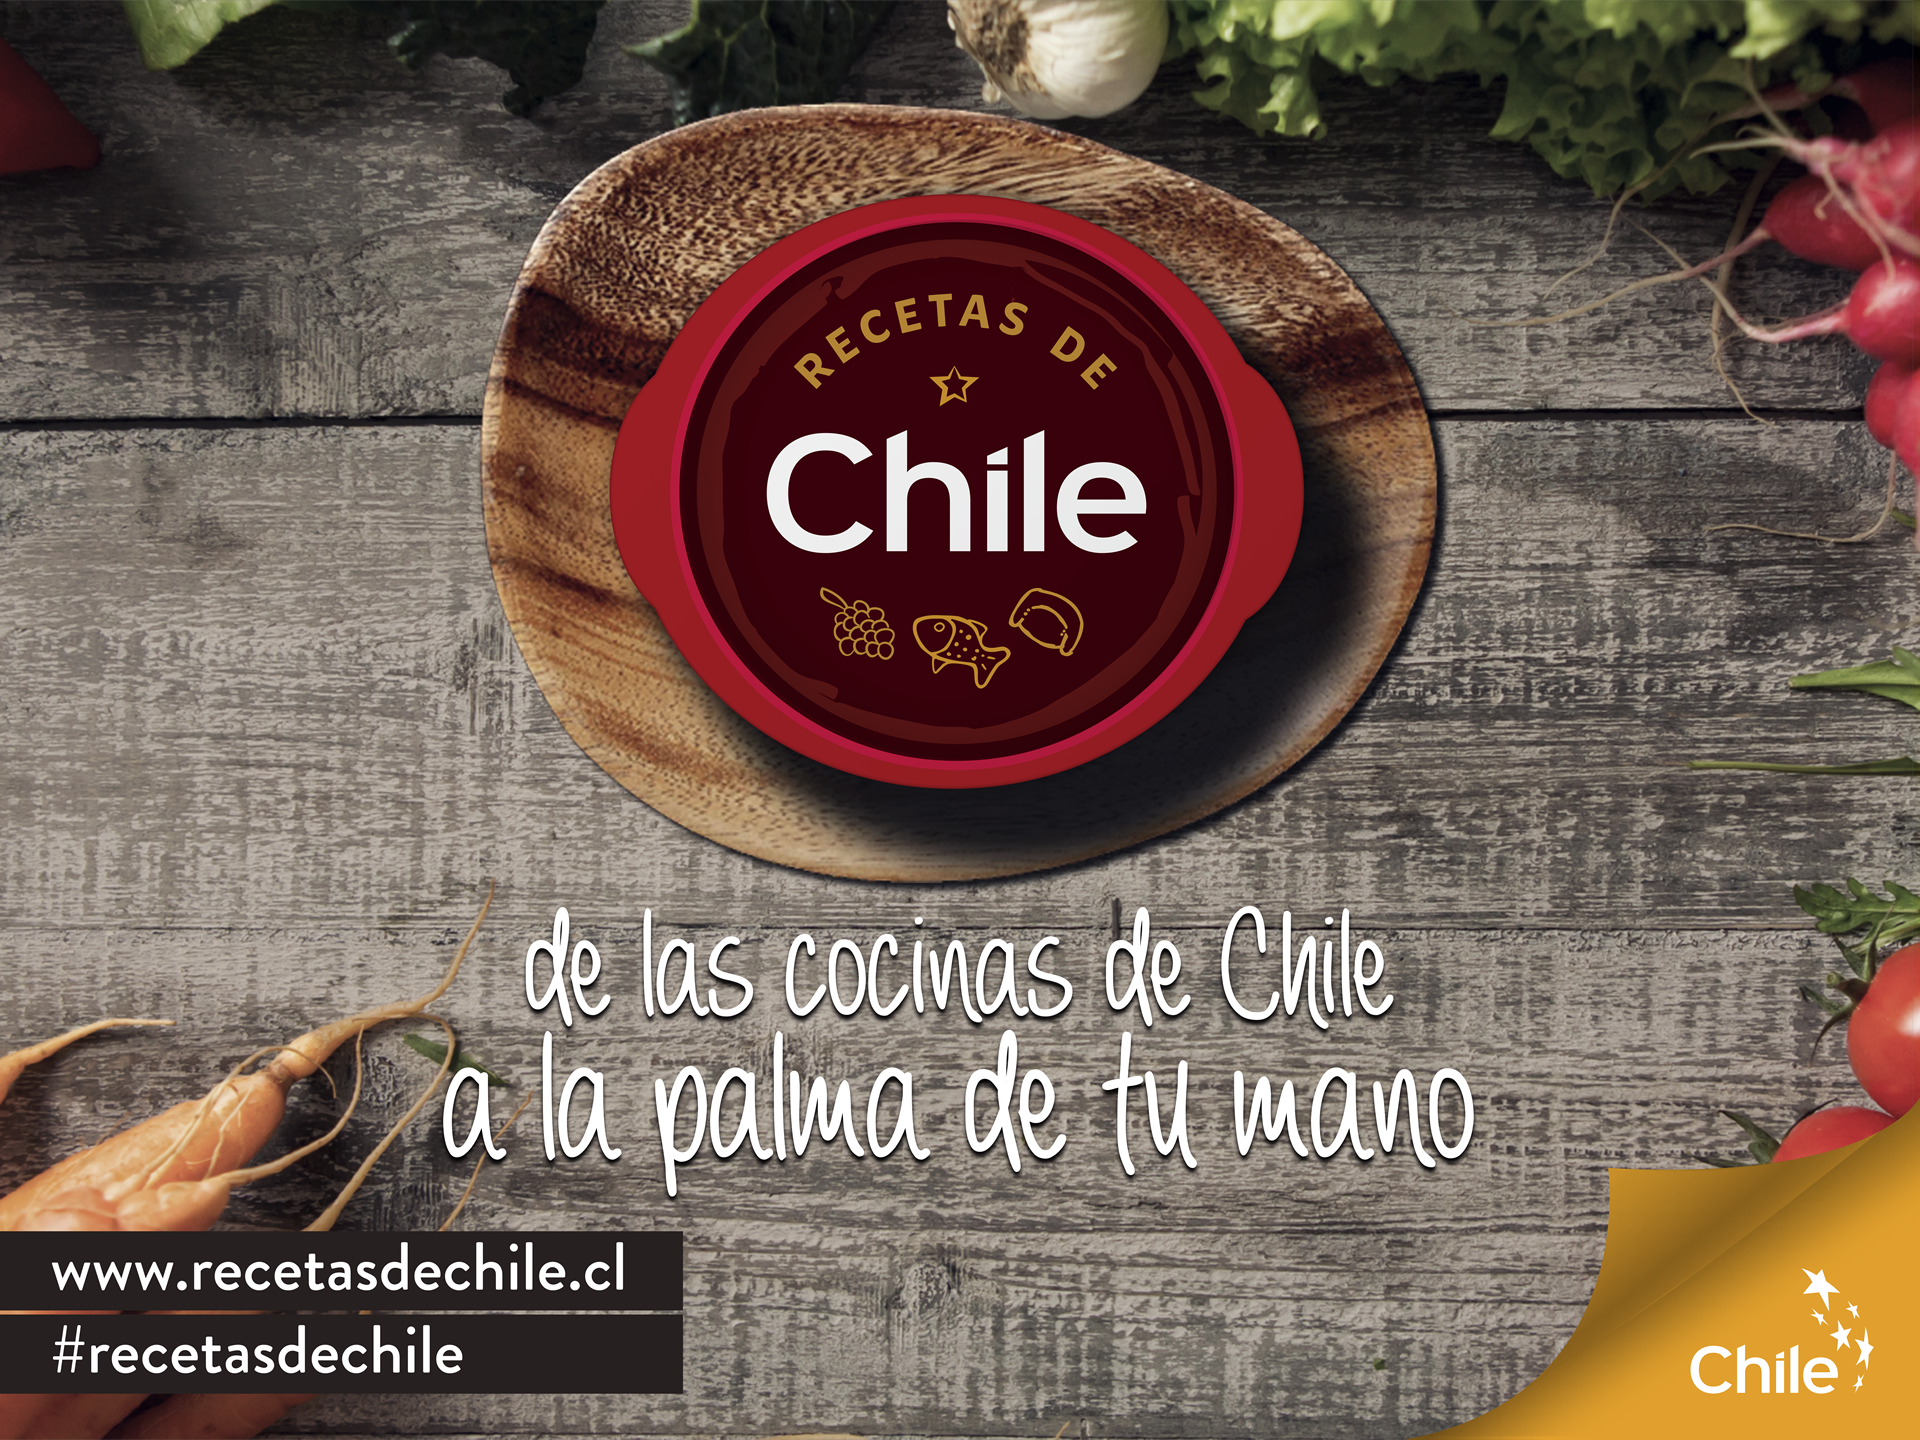 image of Imagen de Chile Wins 2016 Best Beverage Mobile Application, Best Food Industry Mobile Application, Best Information Services Mobile Application, Best Leisure Mobile Application, Best Non-Profit Mobile Application Mobile WebAward for Recetas de Chile